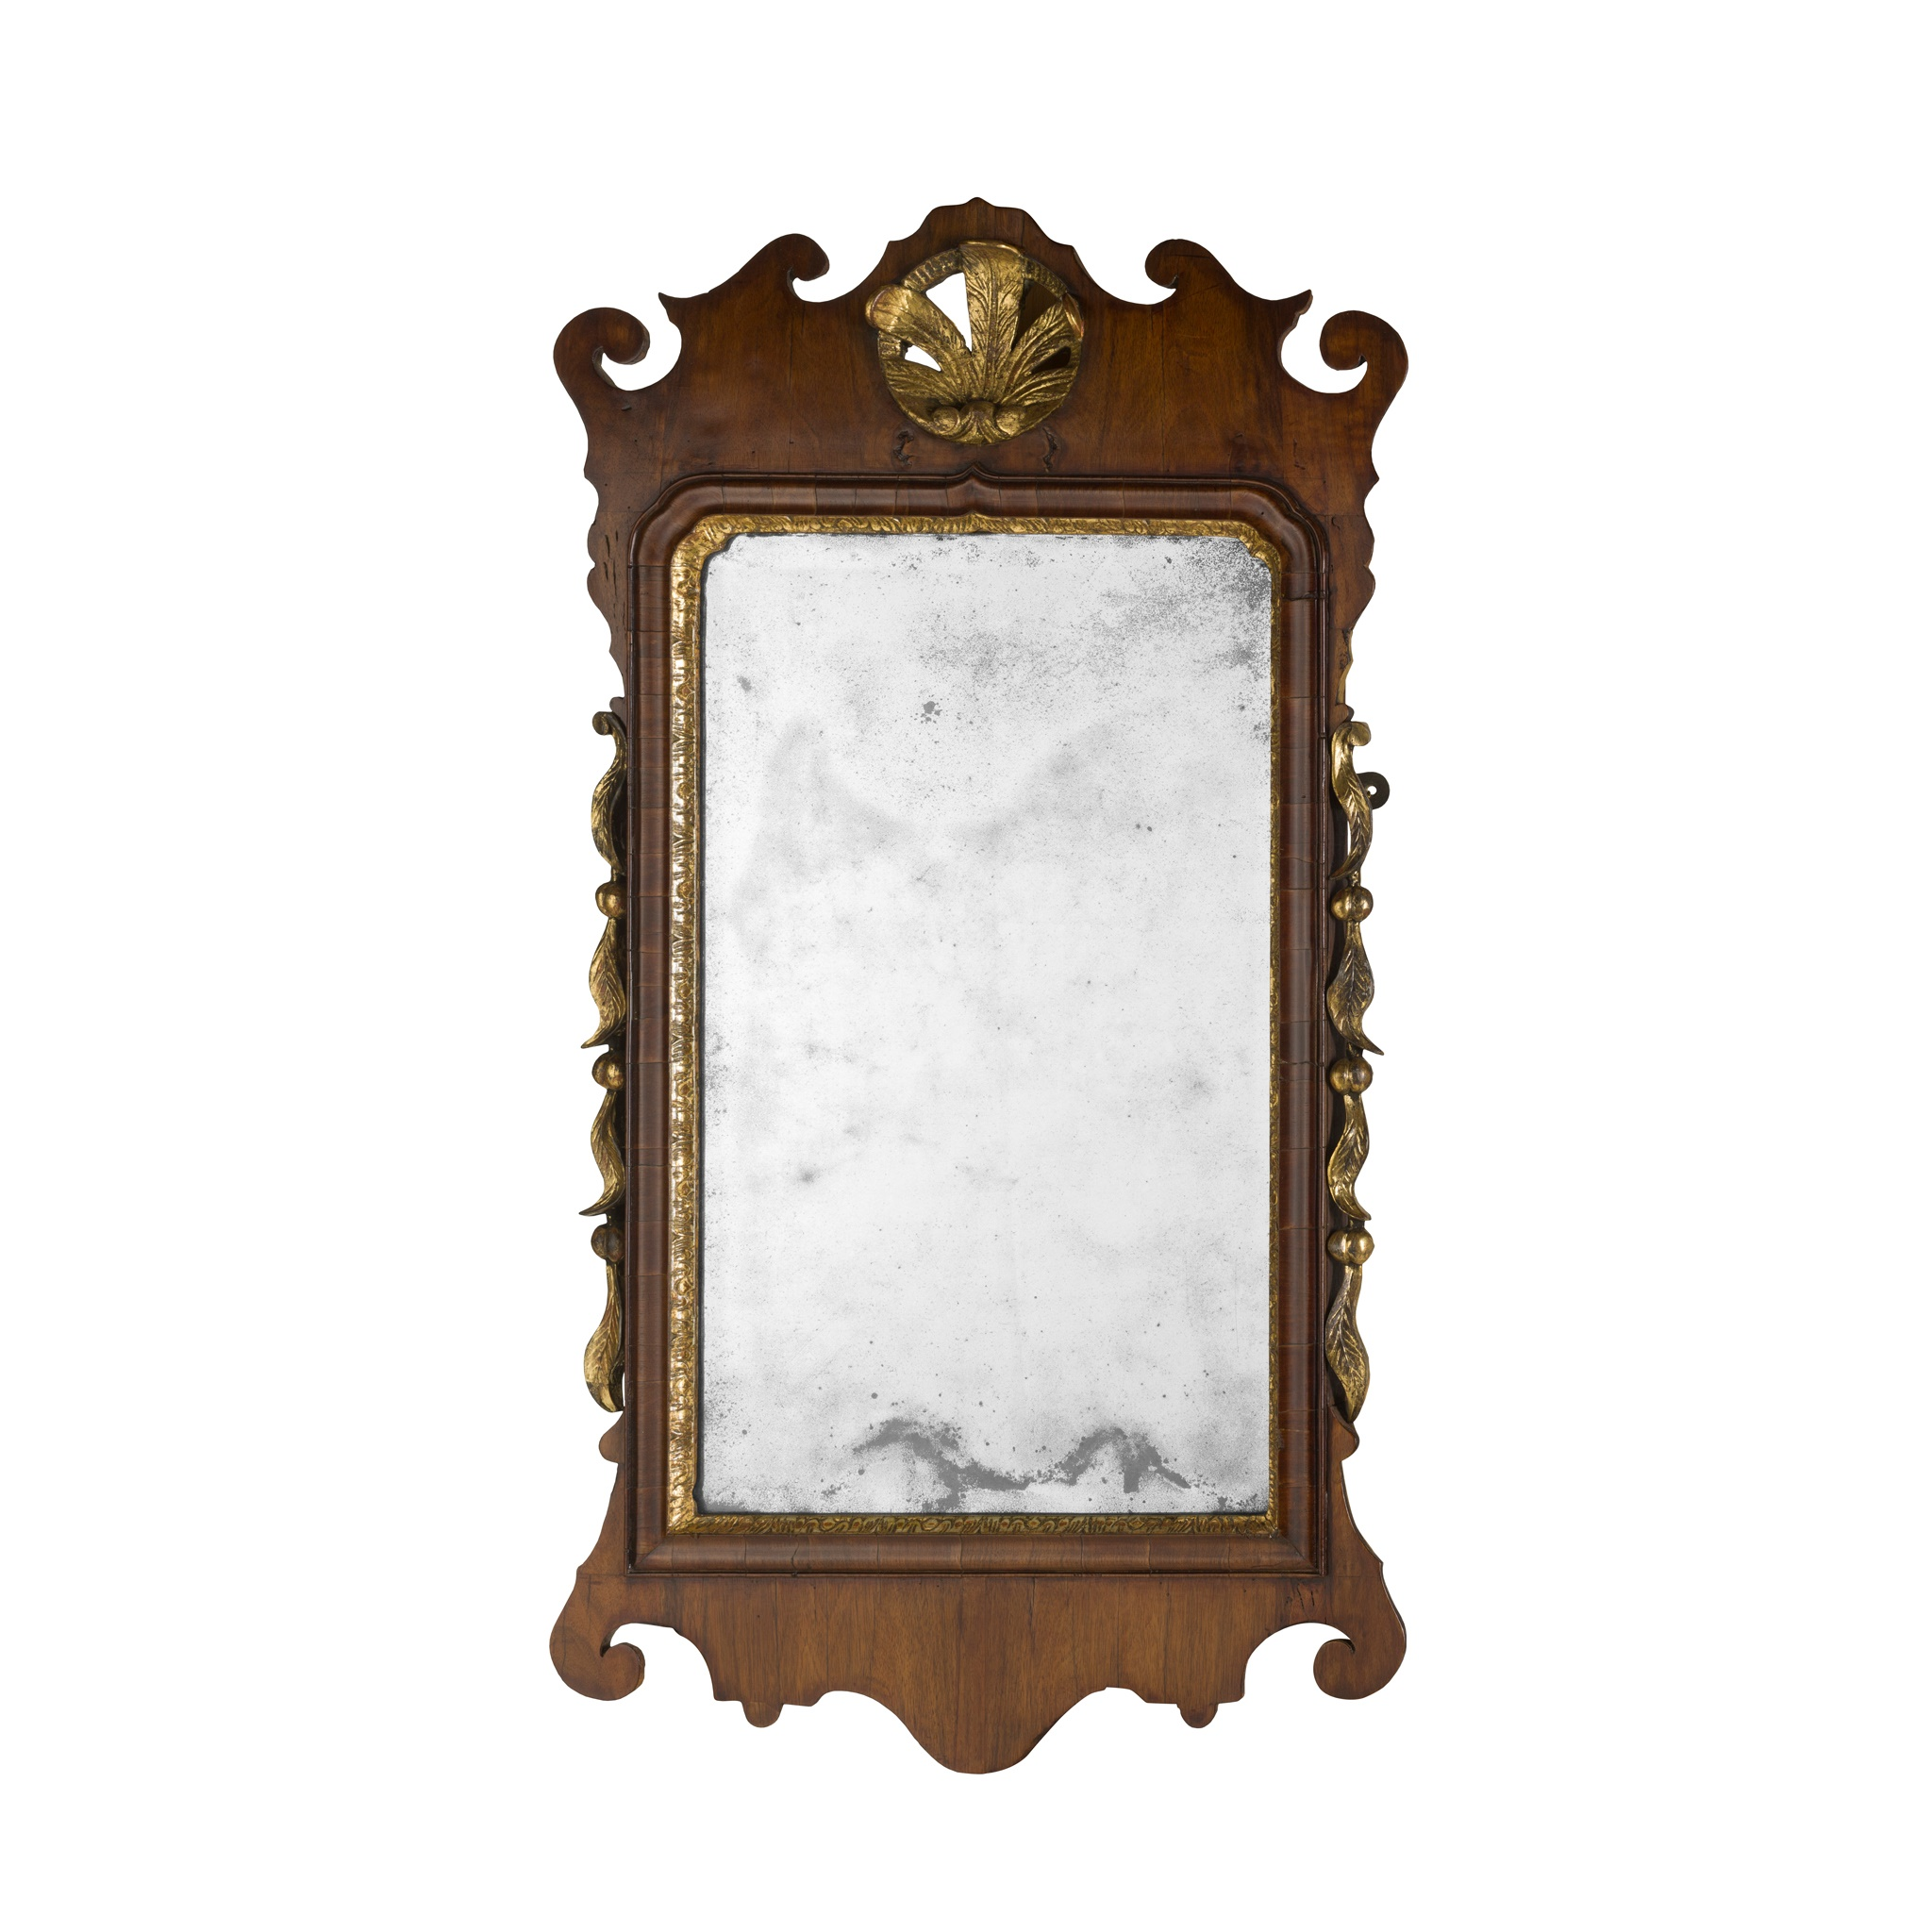 GEORGE I WALNUT AND GILTWOOD MIRROR EARLY 18TH CENTURY